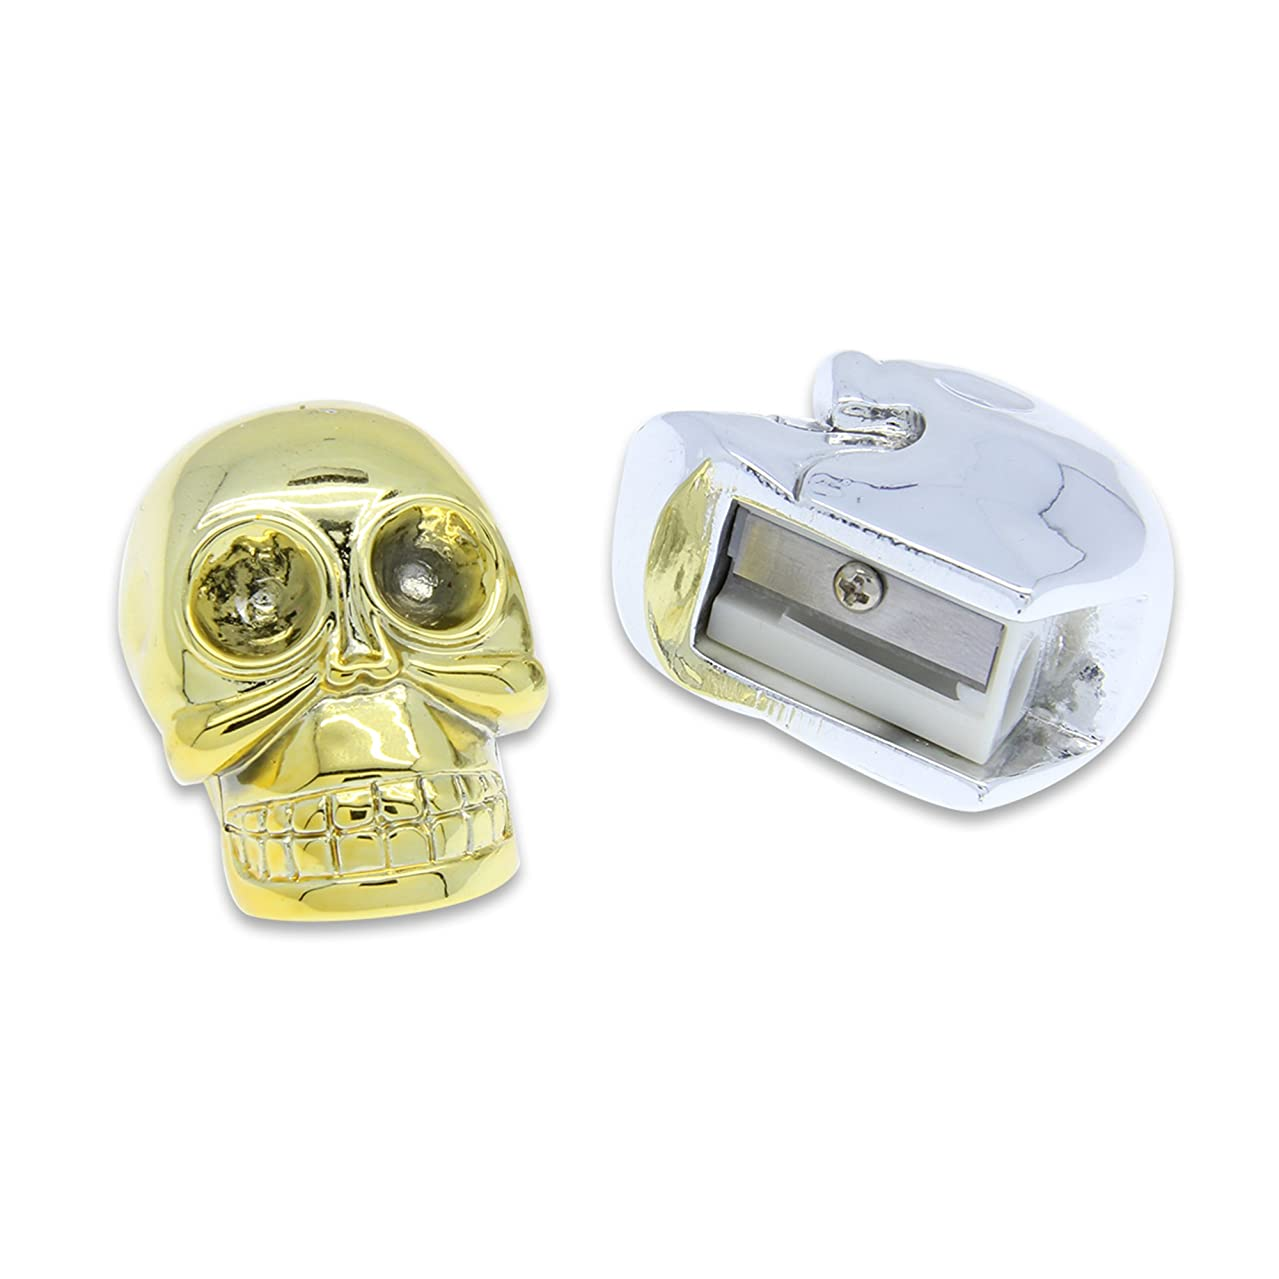 DCI Skull Pencil Sharpener (50412) ,Assorted gold or silver color